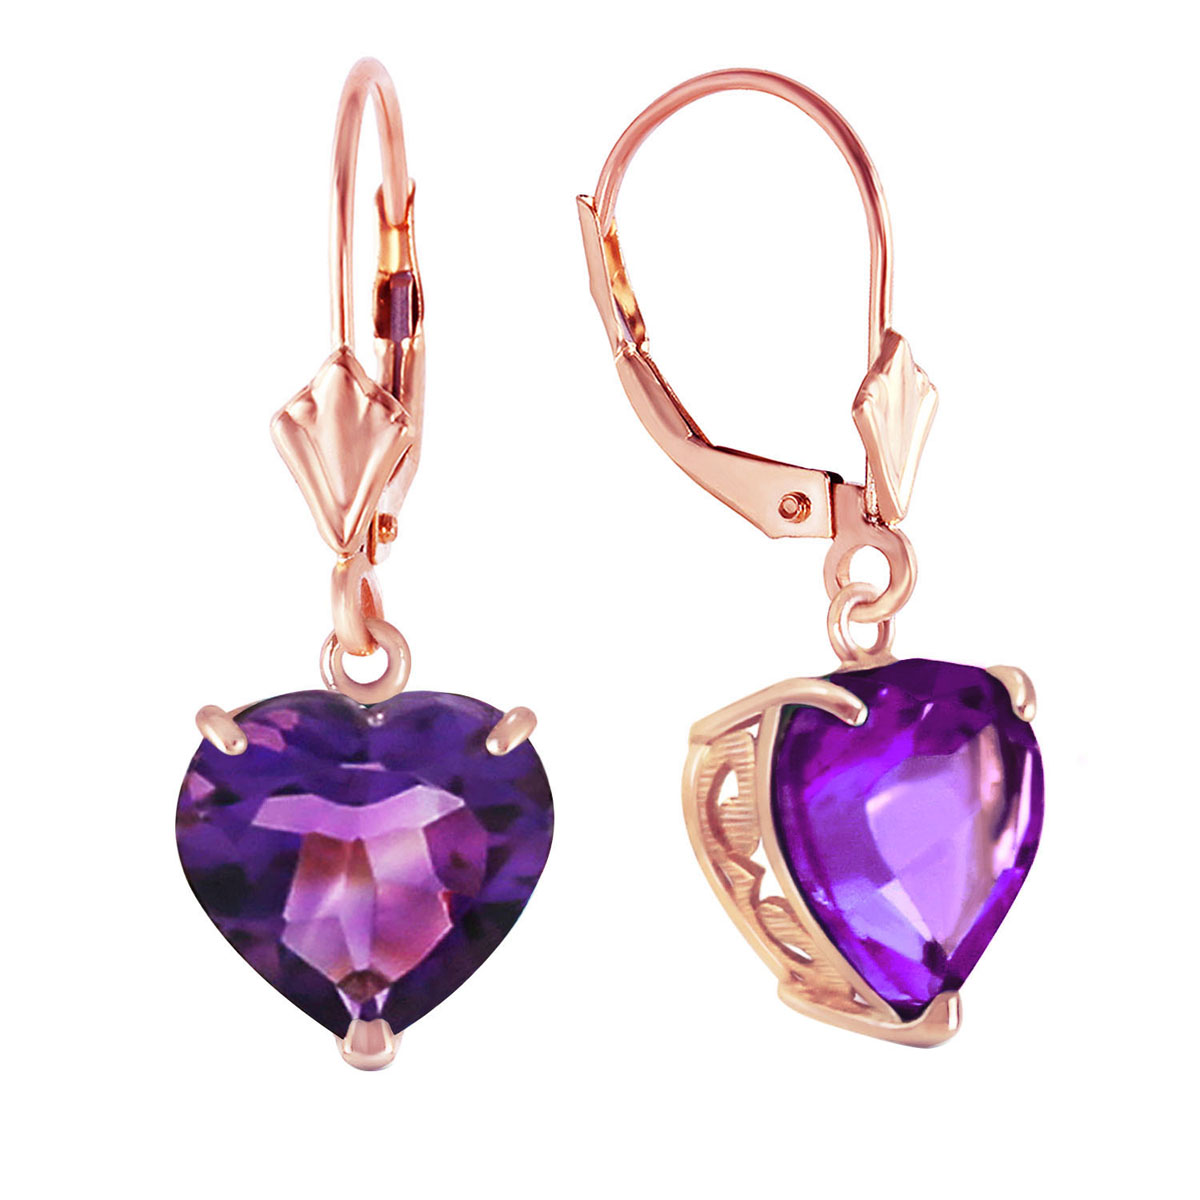 Amethyst Large Heart Earrings 6.2 ctw in 9ct Rose Gold